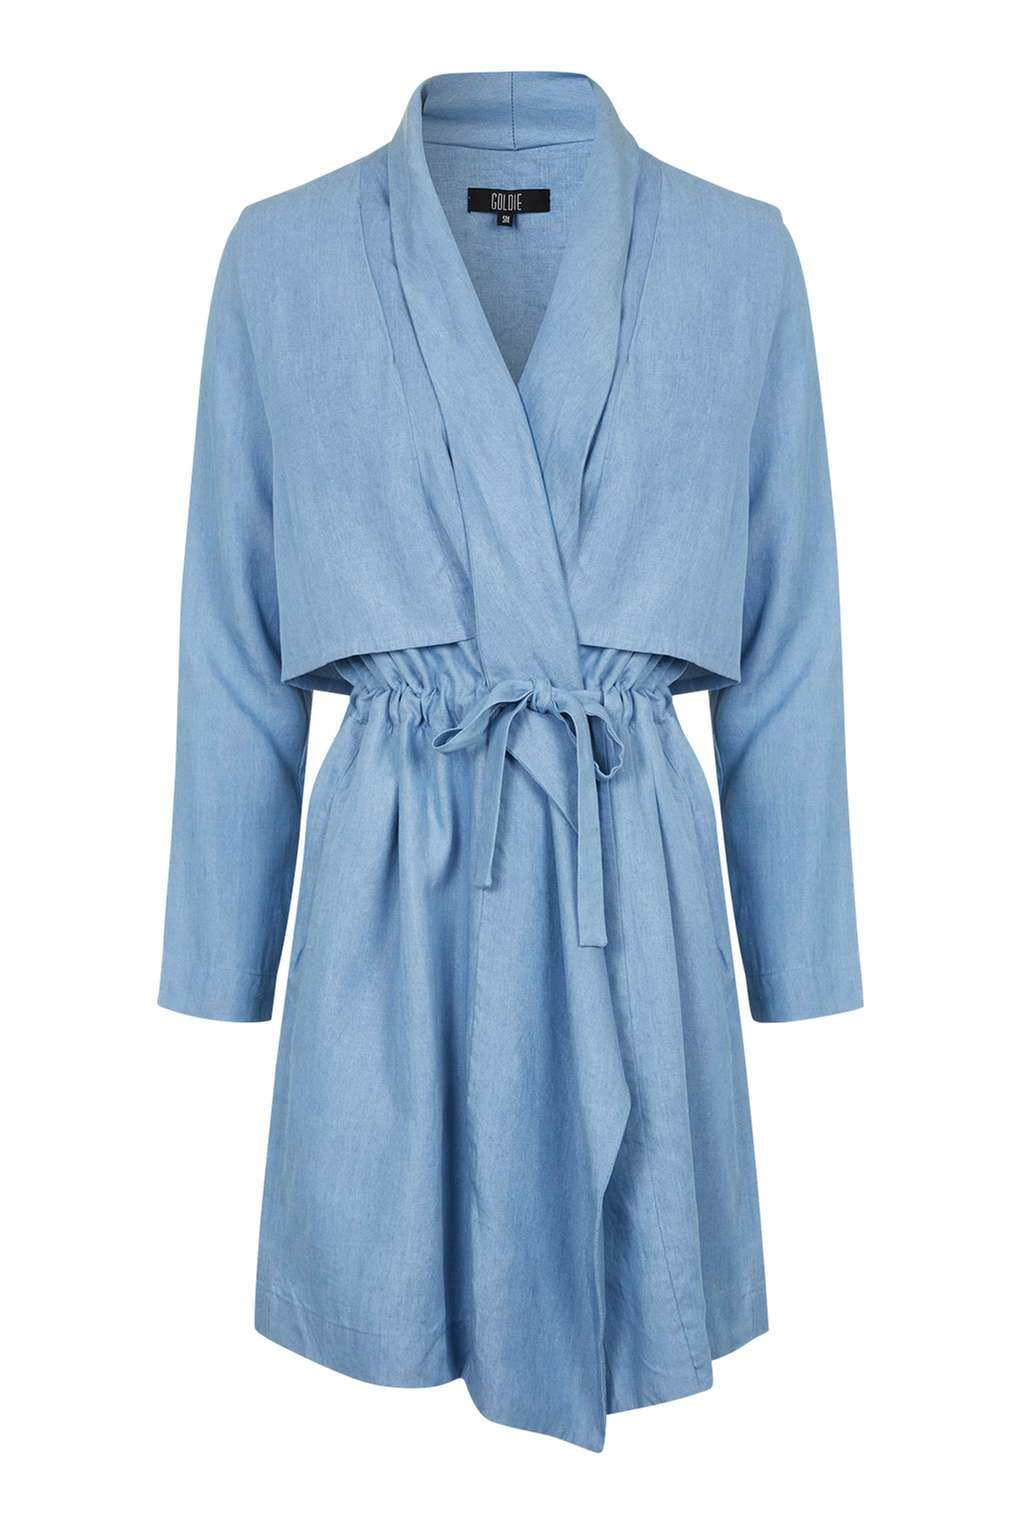 Denim Waterfall Coat by Goldie  Price: £69  Shop it   here